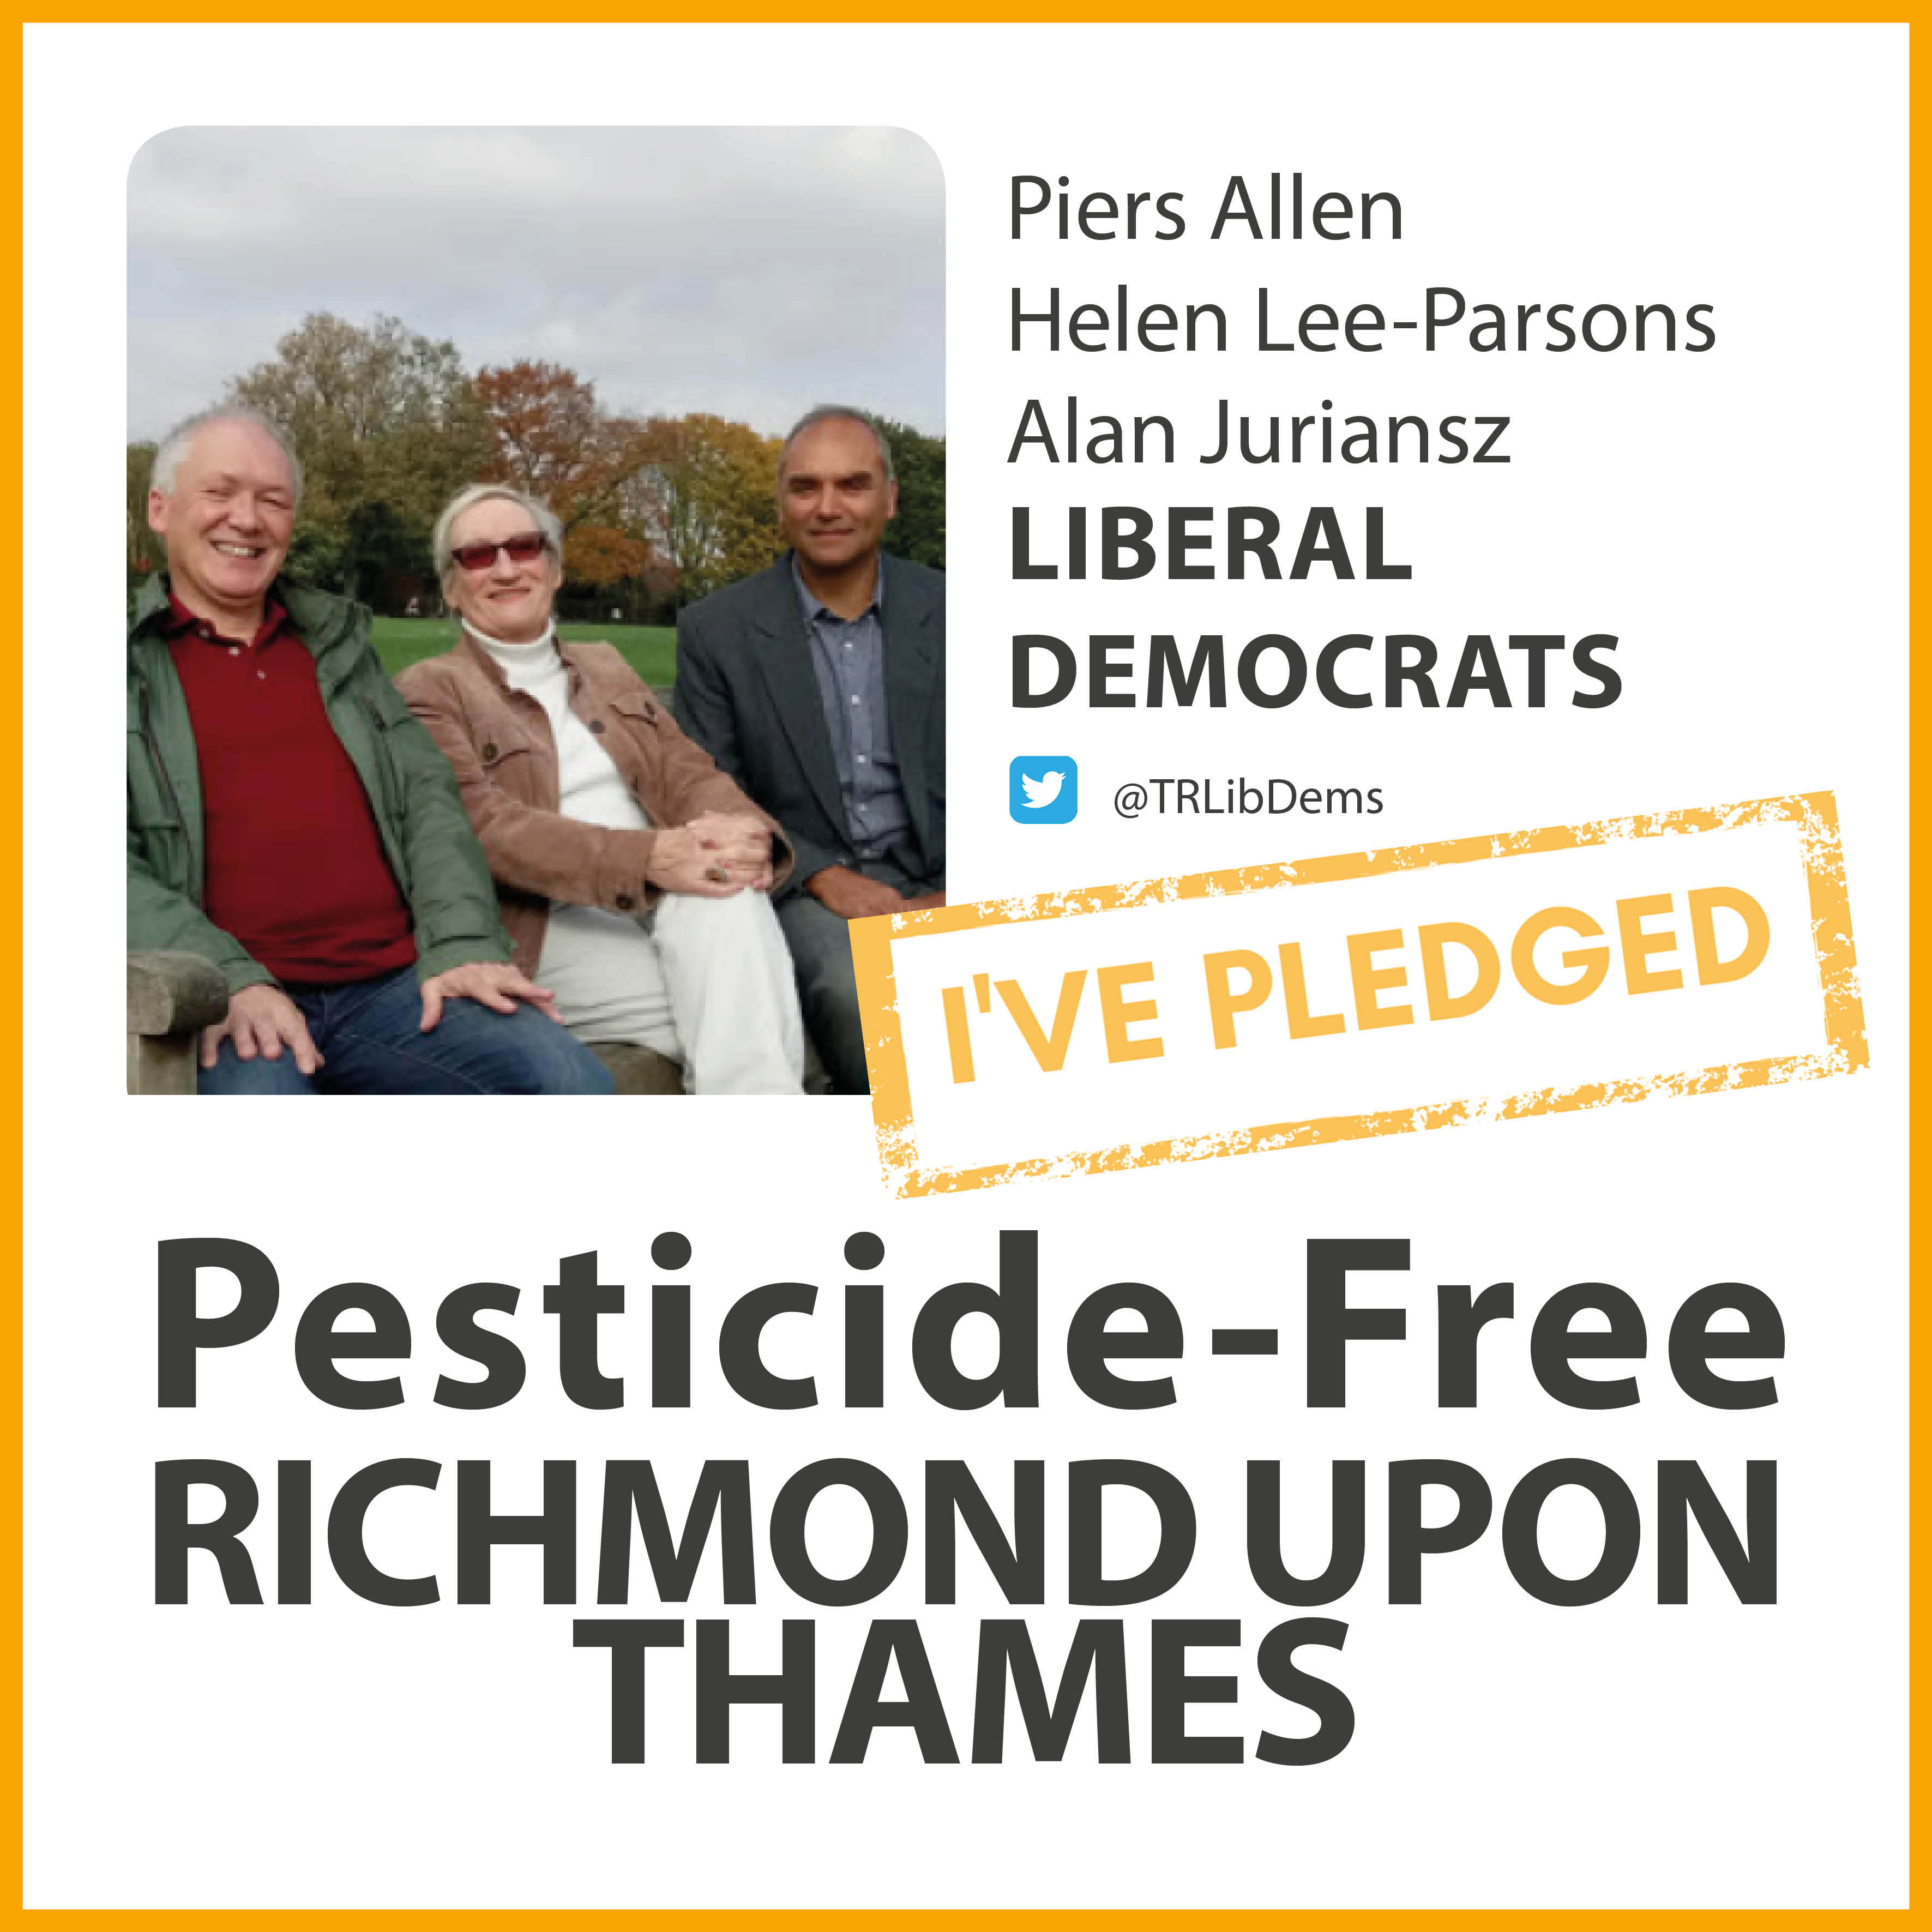 West Twickenham Lib Dems have taken the pesticide-free pledge